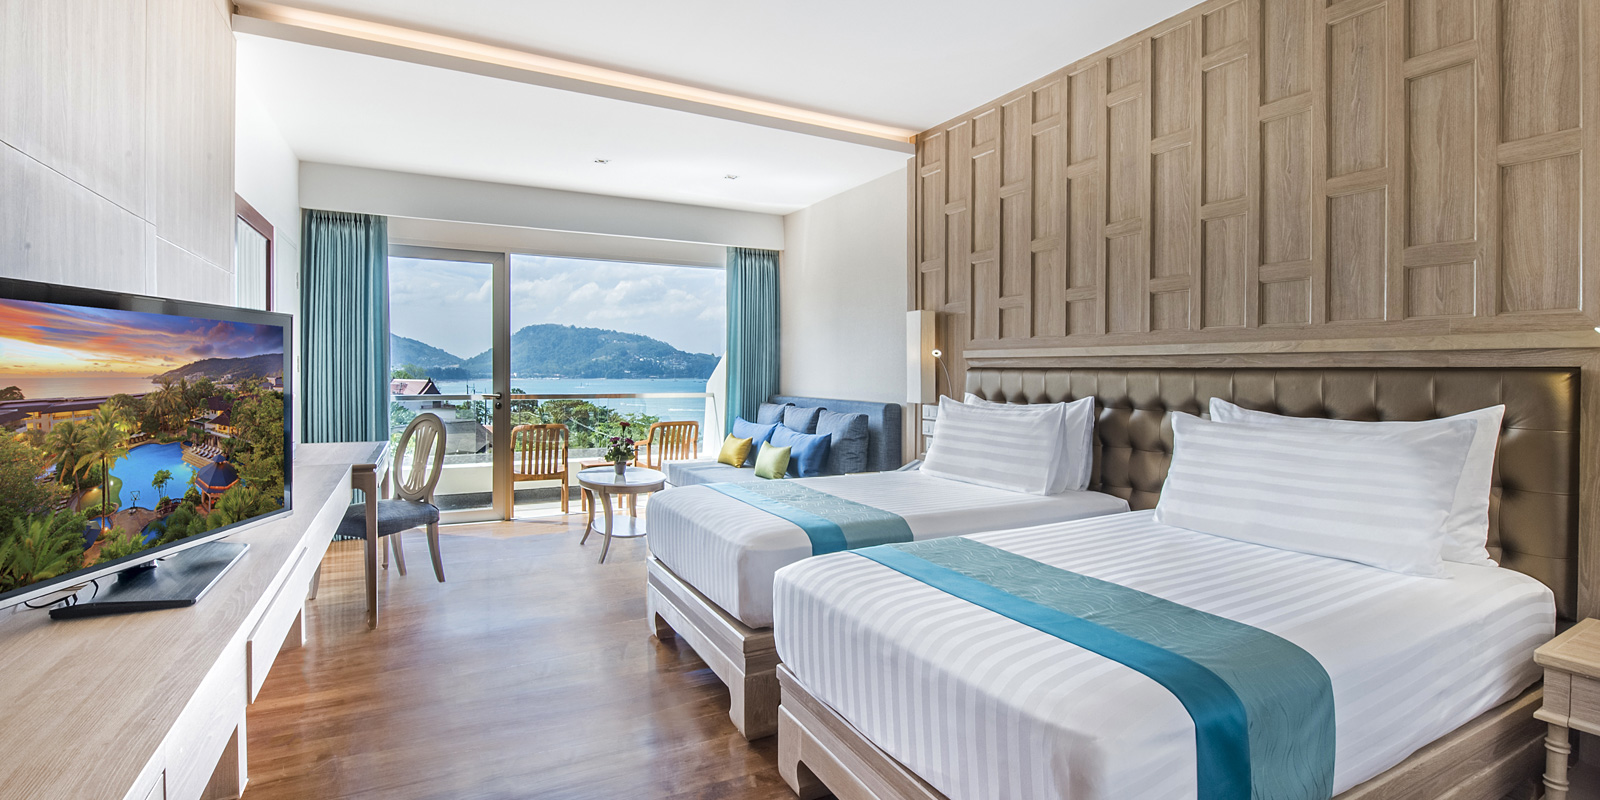 Super Deluxe (Newly Renovated) - Sea view